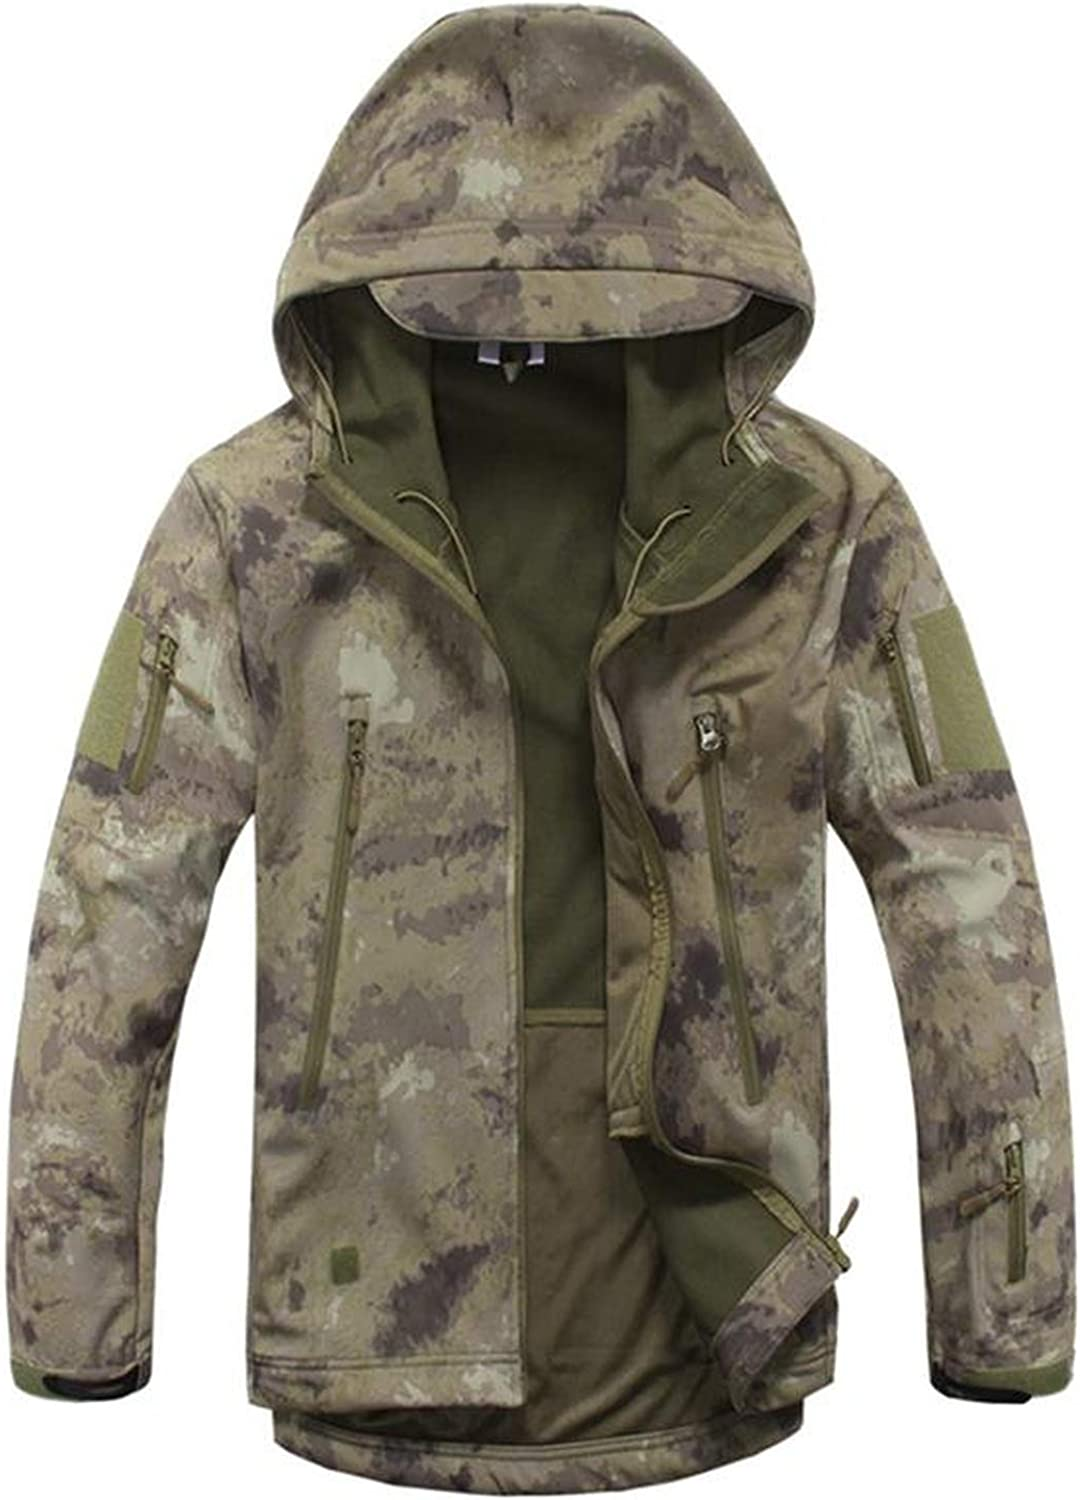 Fairyforest Camouflage Military Tactical Jacket Soft Shell Waterproof Hunt Jacket Raincoat,Attack,XXXL